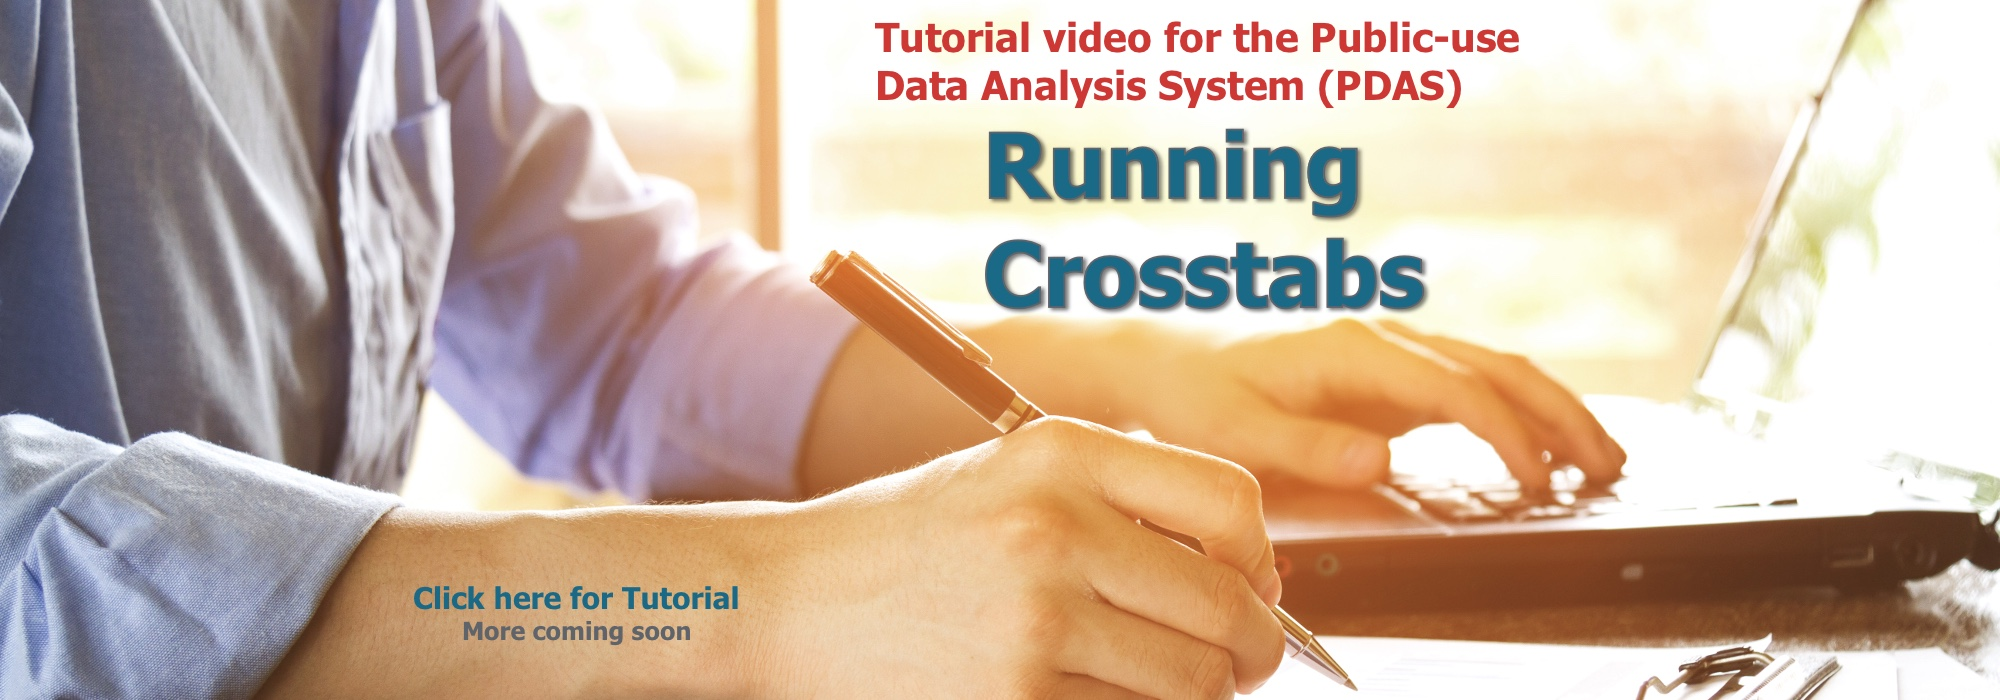 Crosstab tutorial banner